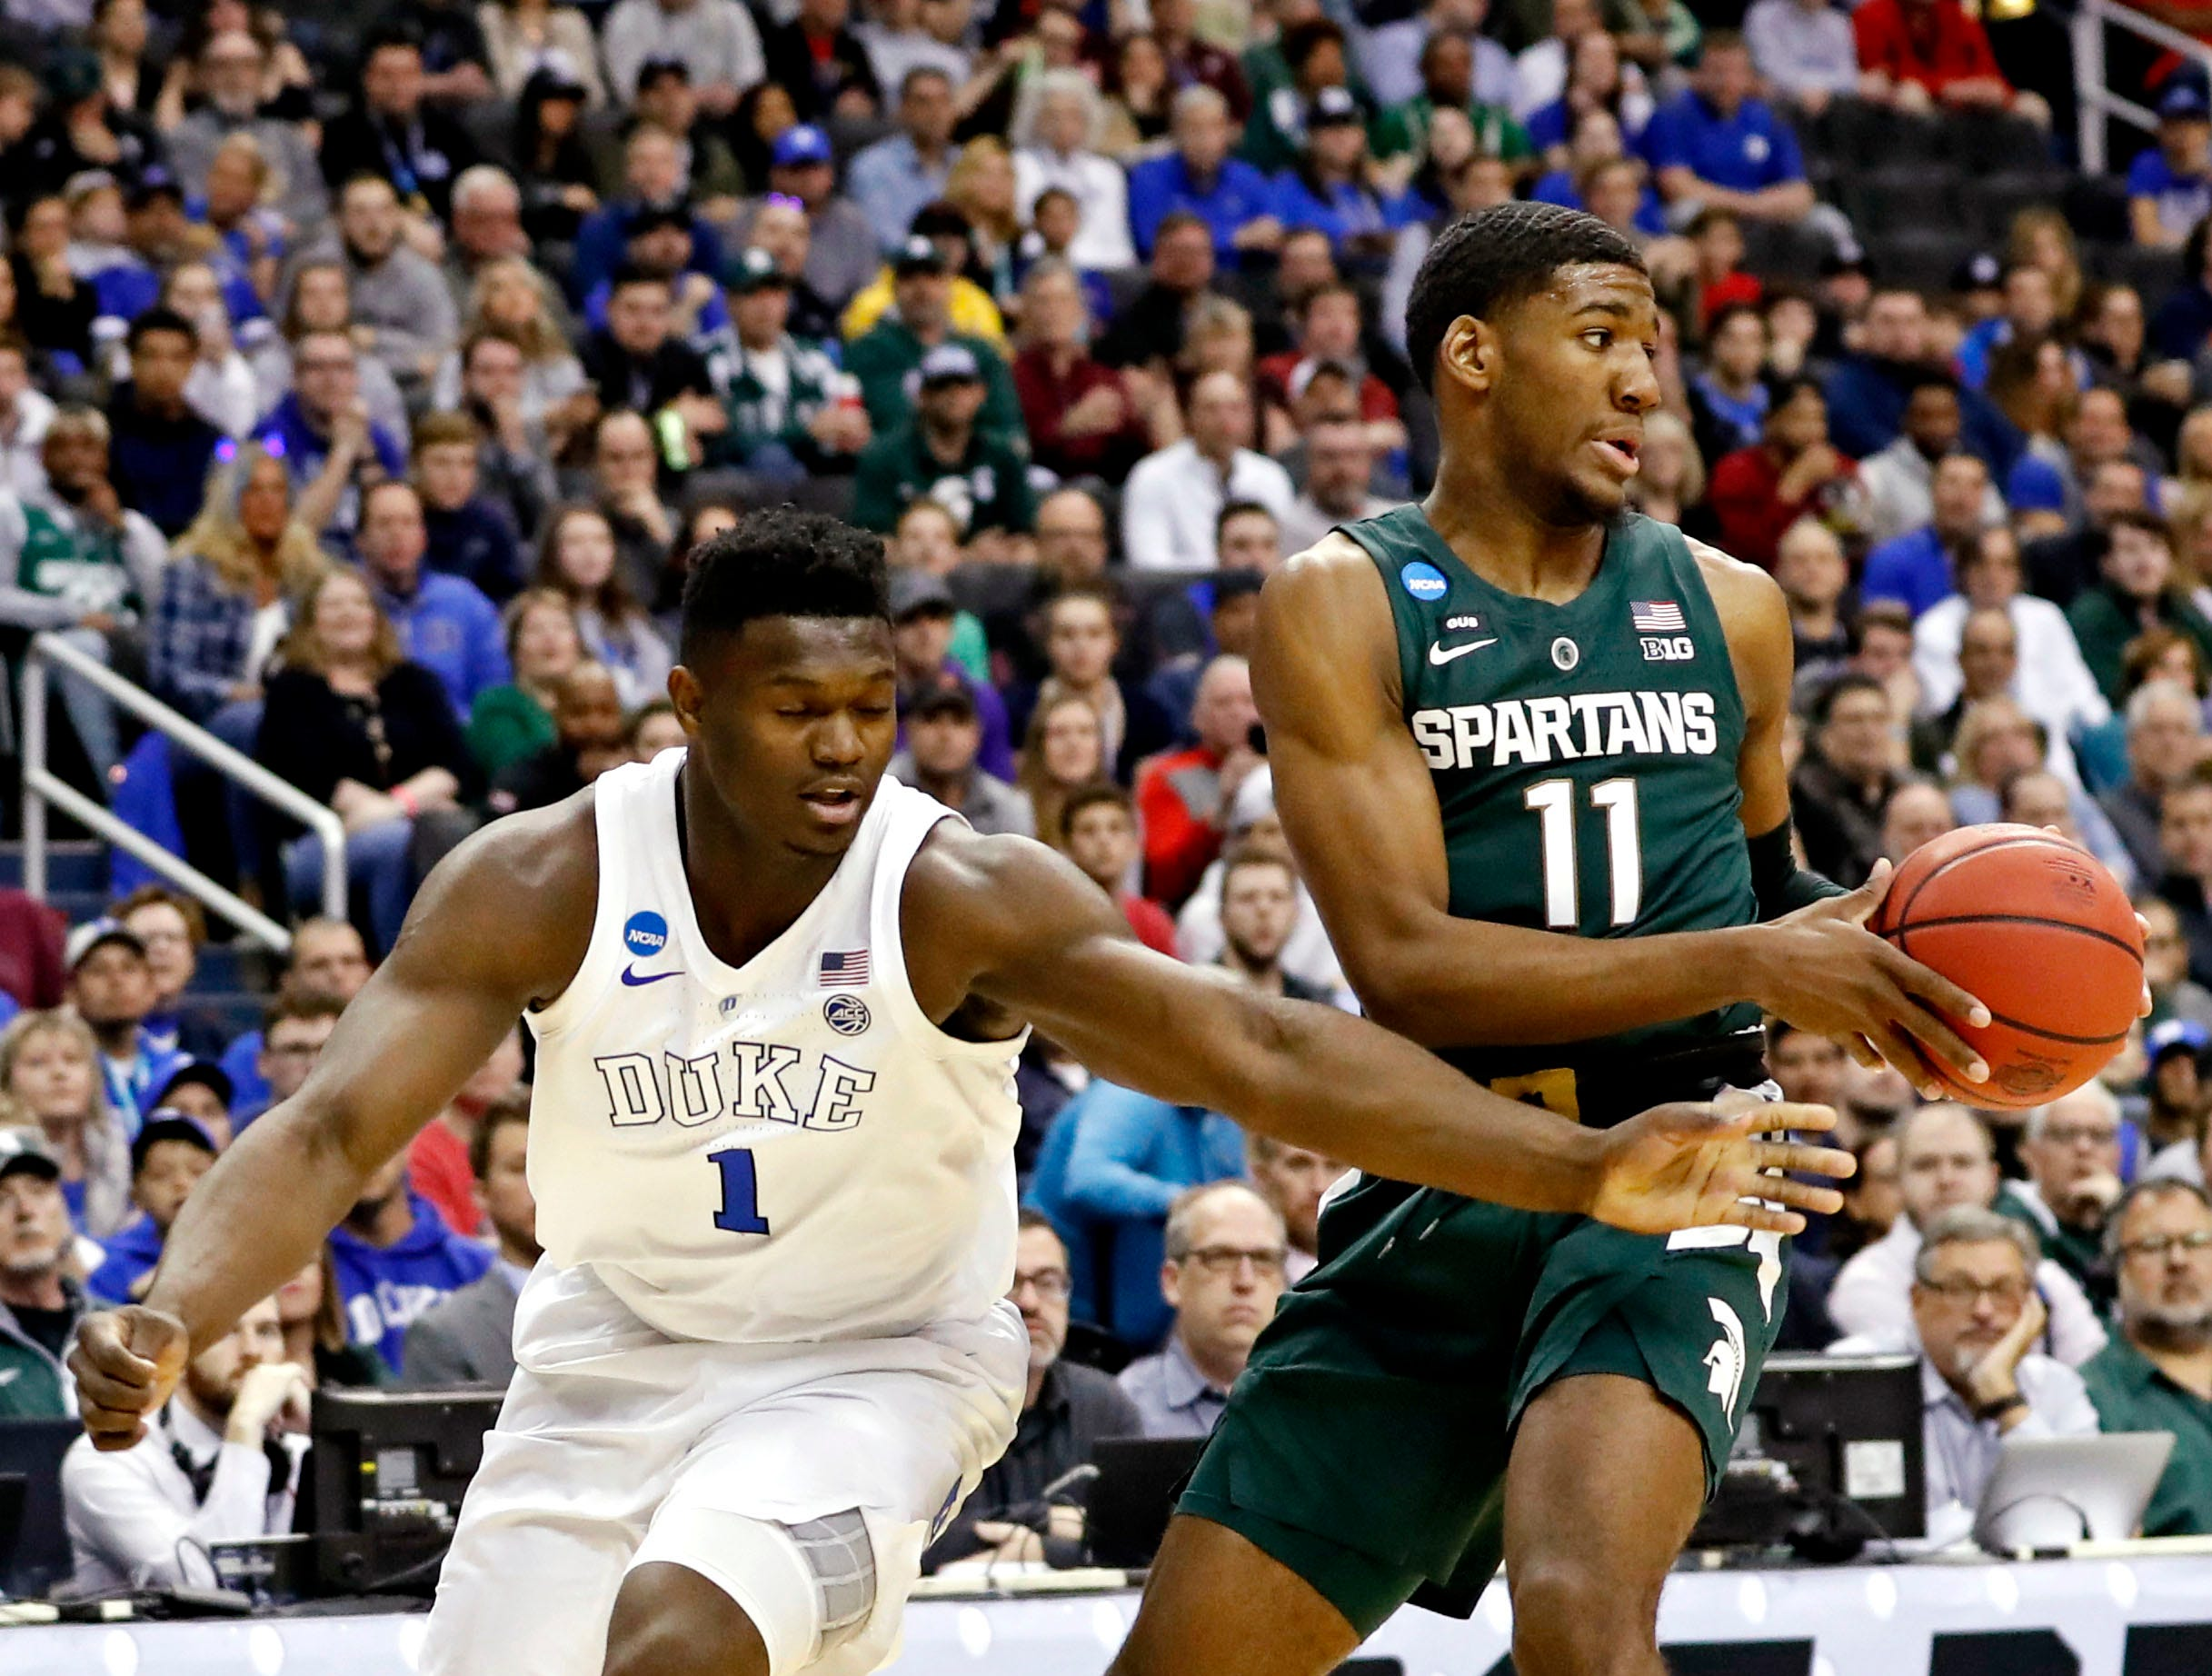 Mar 31, 2019; Washington, DC, USA; Michigan State Spartans forward Aaron Henry (11) handles the ball against Duke Blue Devils forward Zion Williamson (1) during the first half in the championship game of the east regional of the 2019 NCAA Tournament at Capital One Arena. Mandatory Credit: Geoff Burke-USA TODAY Sports